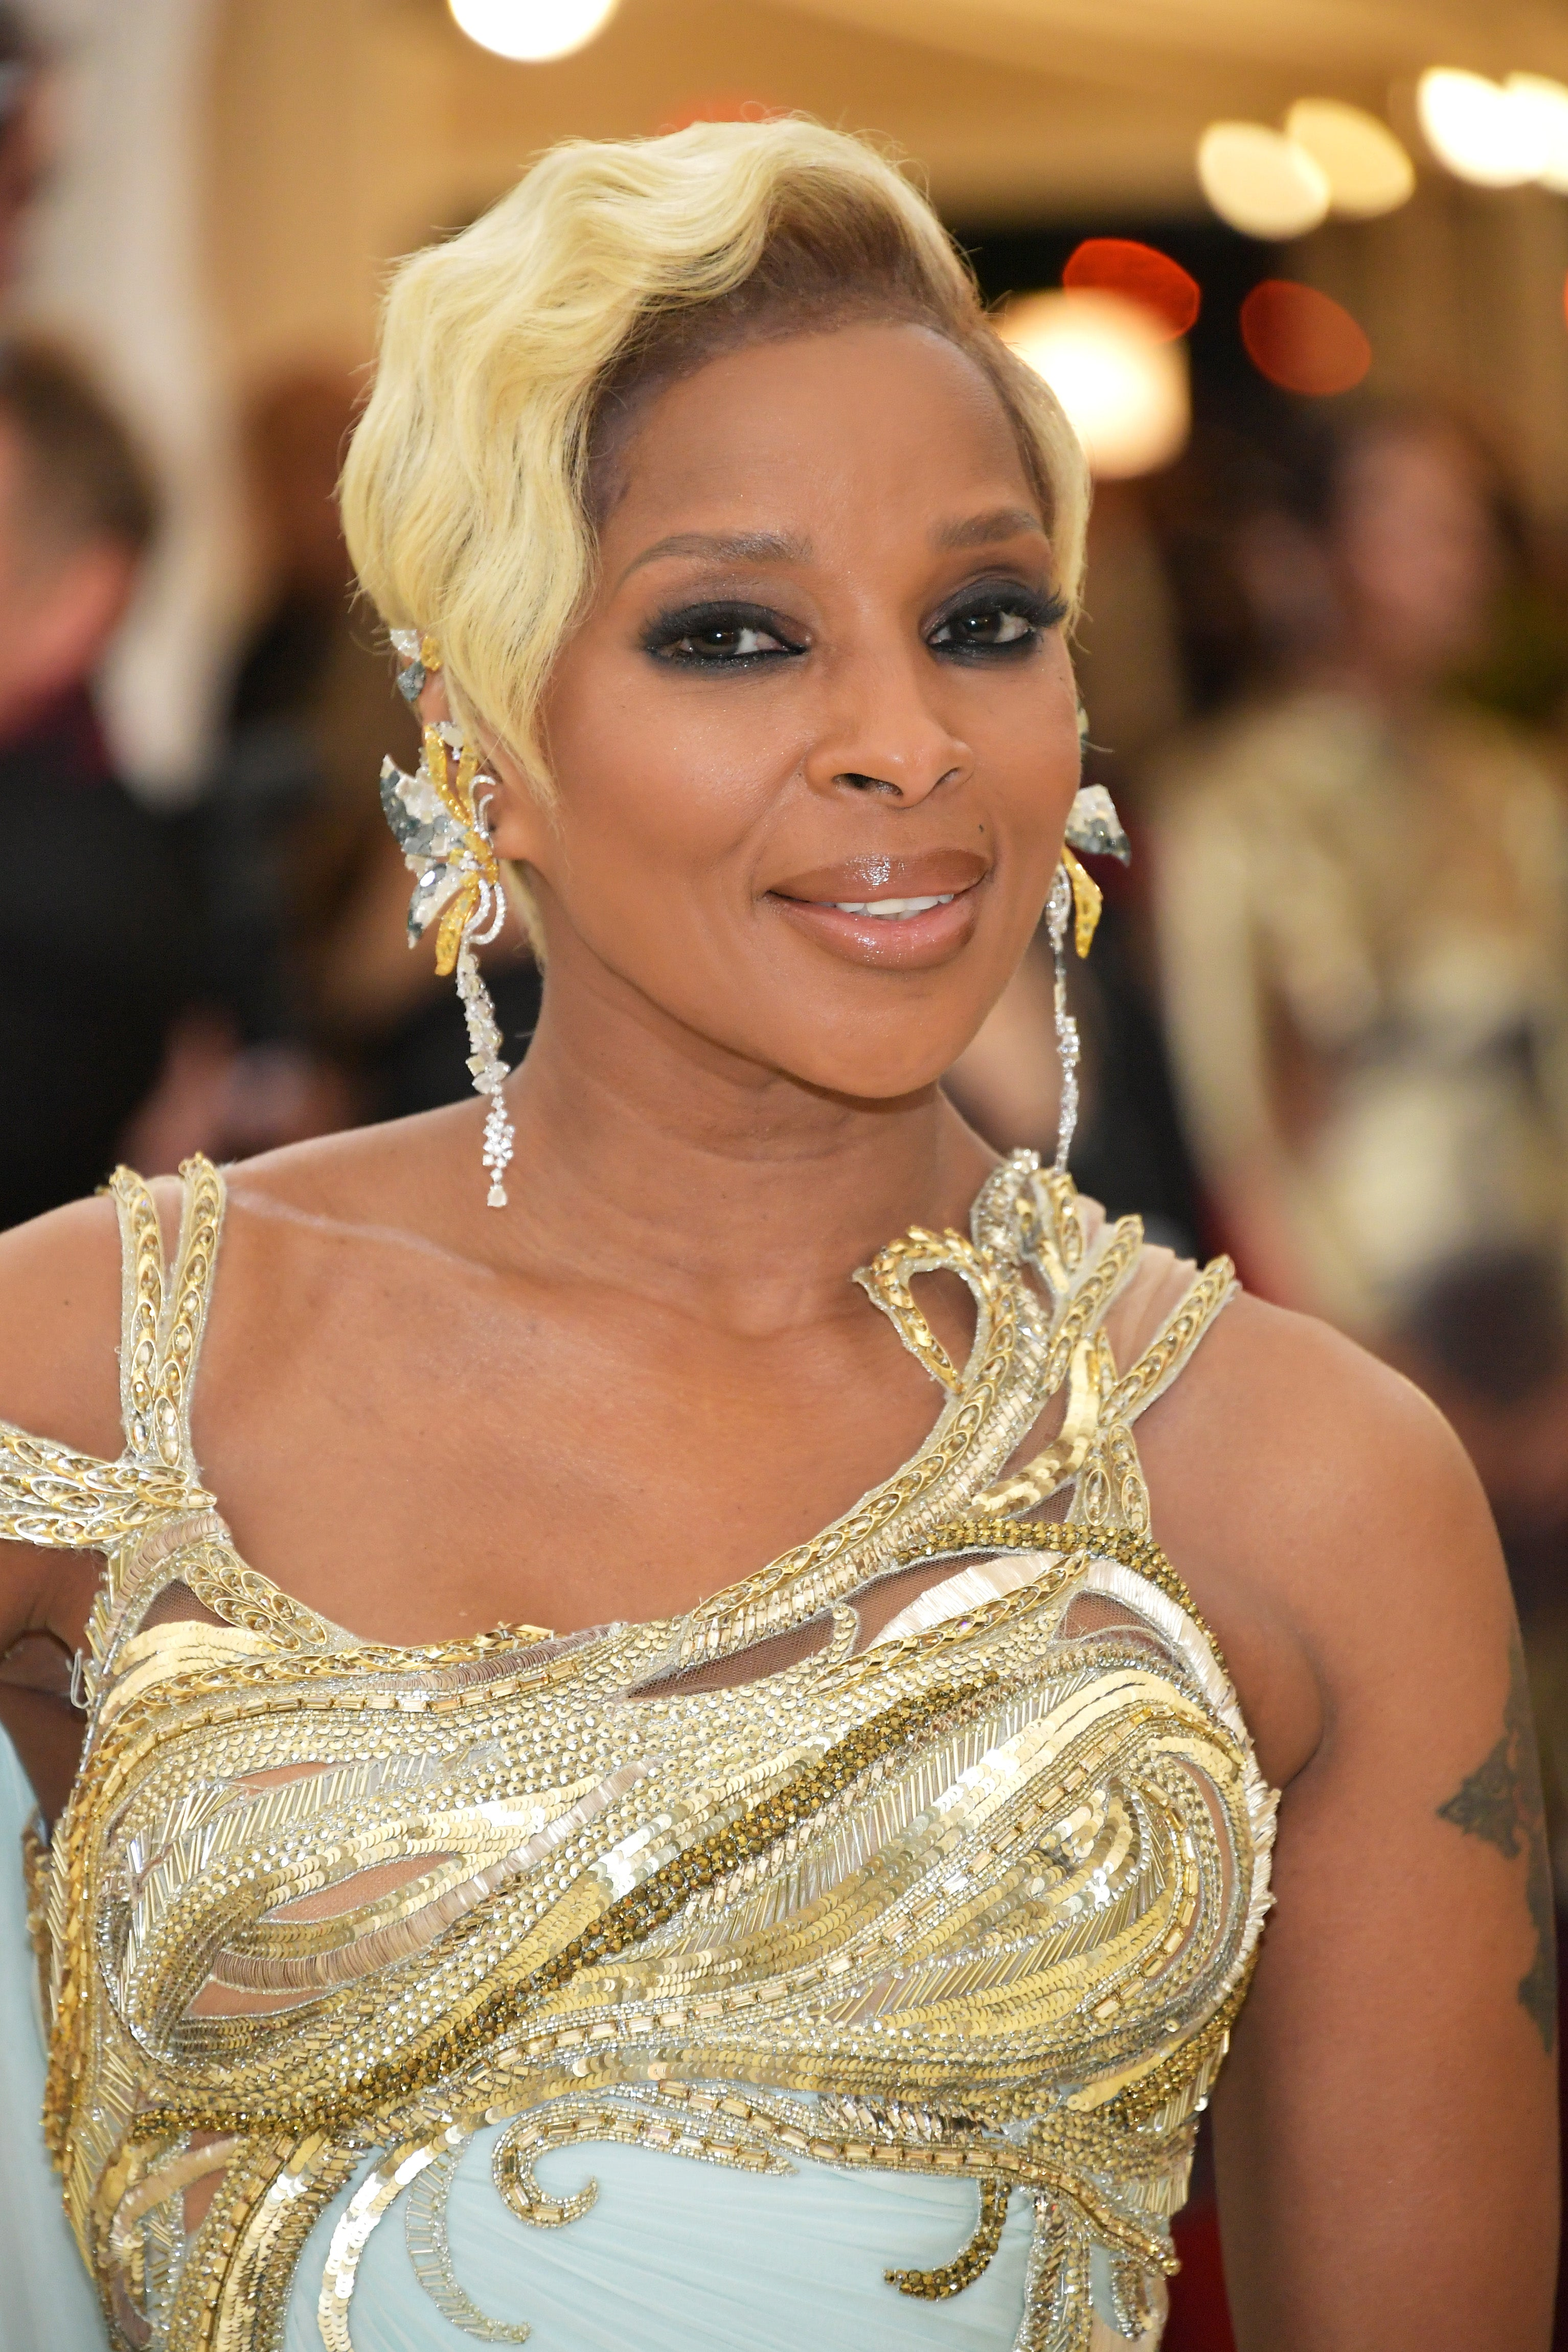 Mary J. Blige Is Officially Divorced From Kendu Isaacs